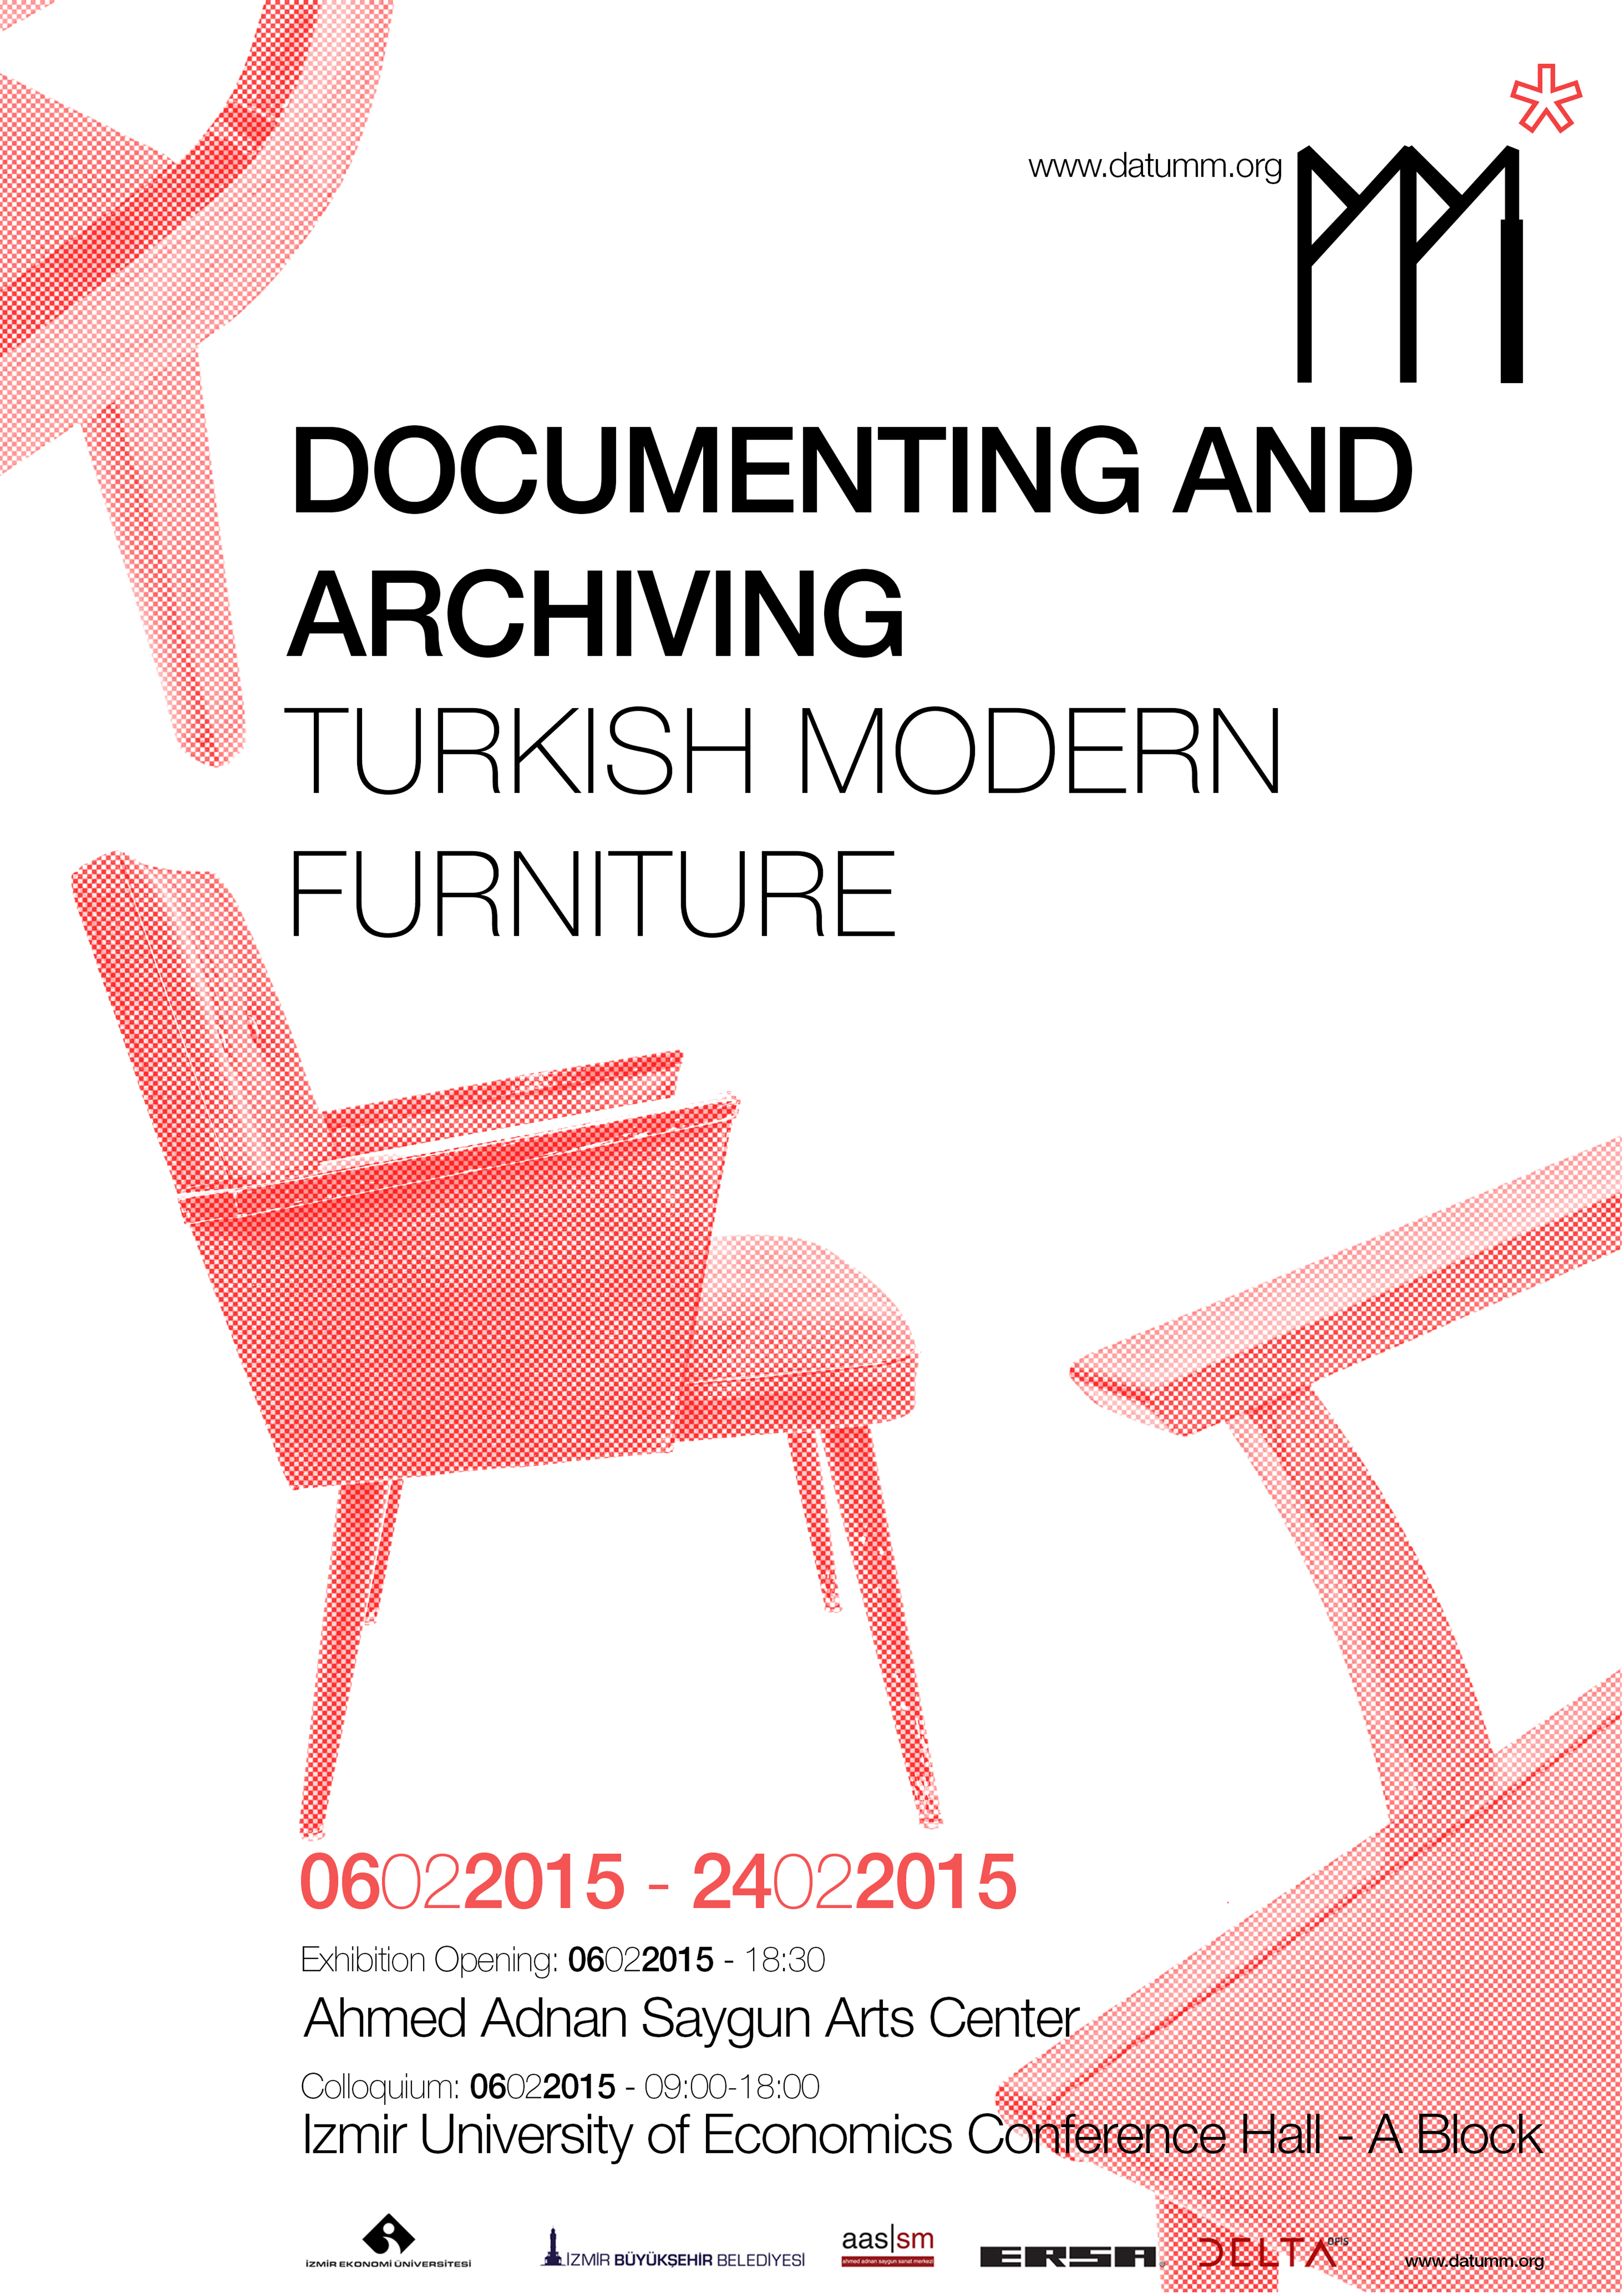 furniture design poster - 28 images - furniture goods ...